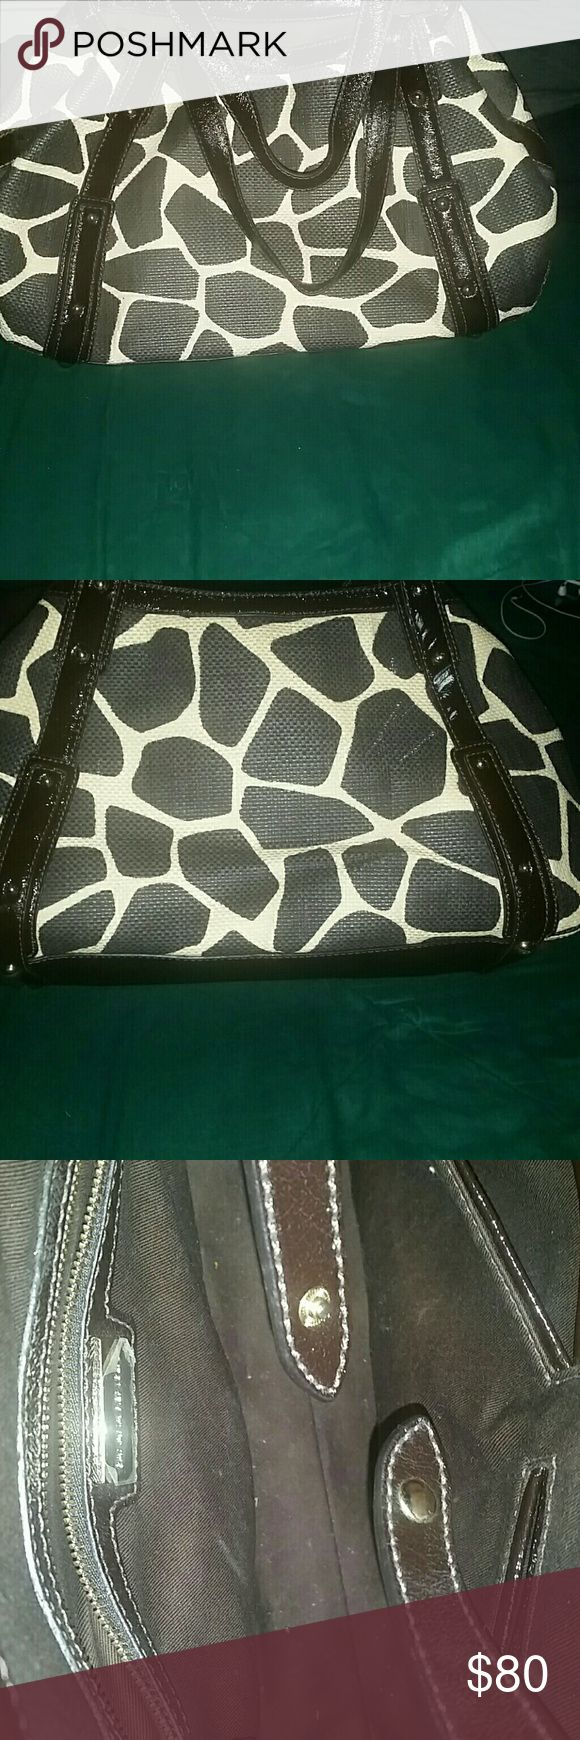 Banana Republic Giraffe Print Bag Great Condition aside from Paint scuff mark.  probably can be removed but I don't want to ruin it. So selling as is price negotiable Banana Republic Bags Totes